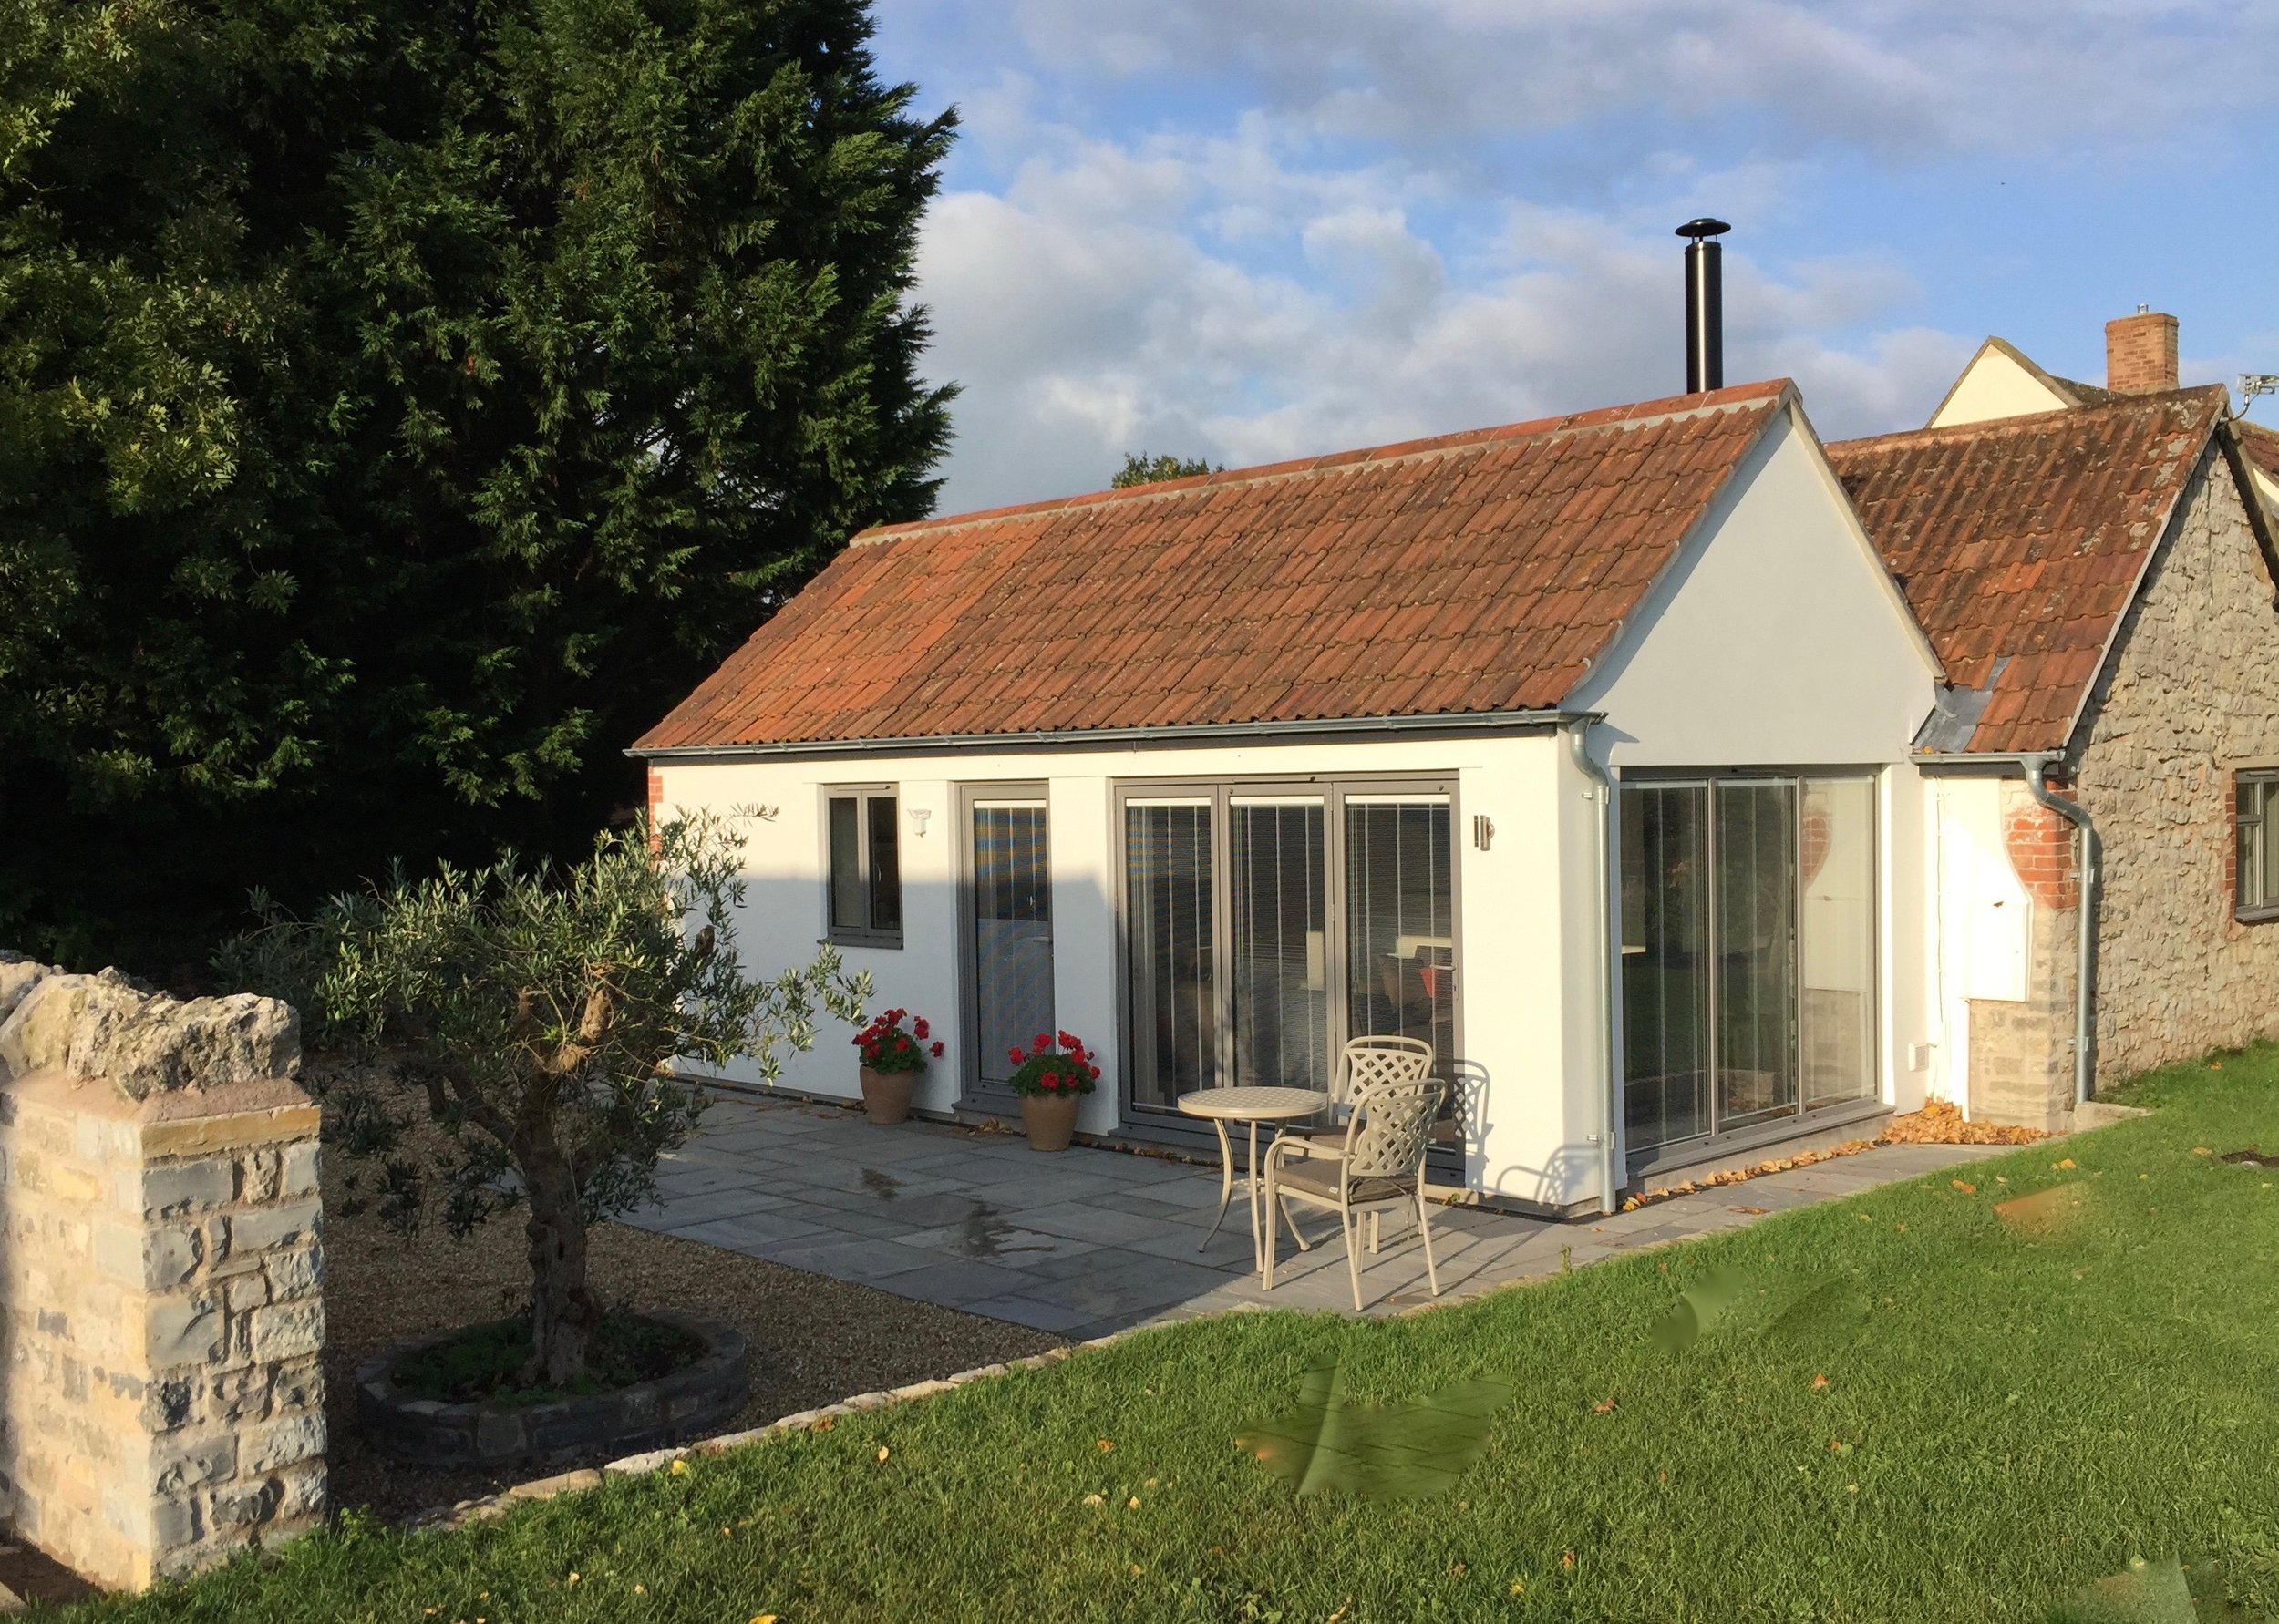 SWALLOW'S REST - SLEEPS UP TO 3  Features: One twin/double bed plus a comfortable sofa beds, outside seating area, kitchen, wc/shower room, log burner, wi-fi.